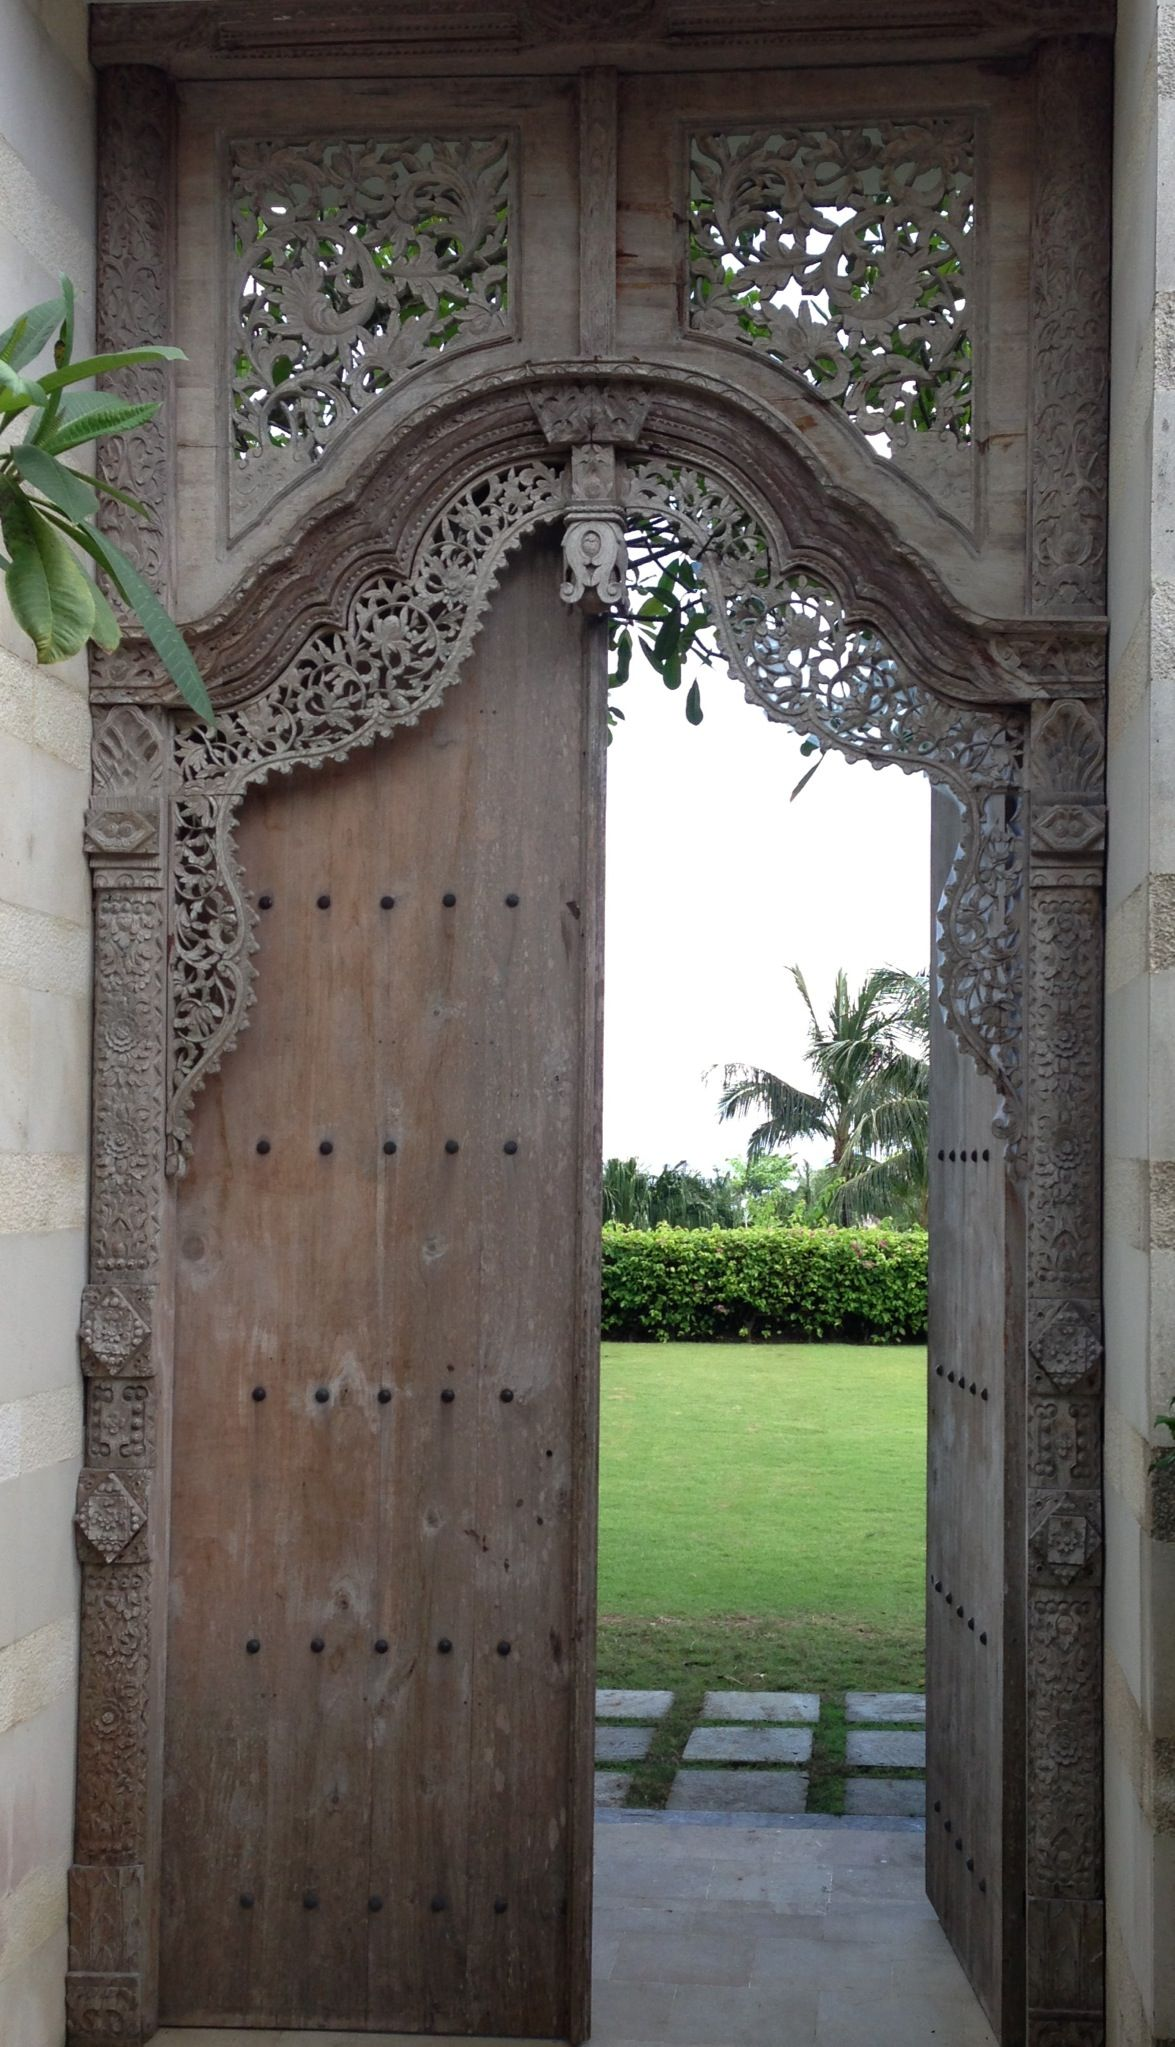 Architecture & Vintage Bedroom Decor Accessories and Ideas | Balinese Doors and ... Pezcame.Com